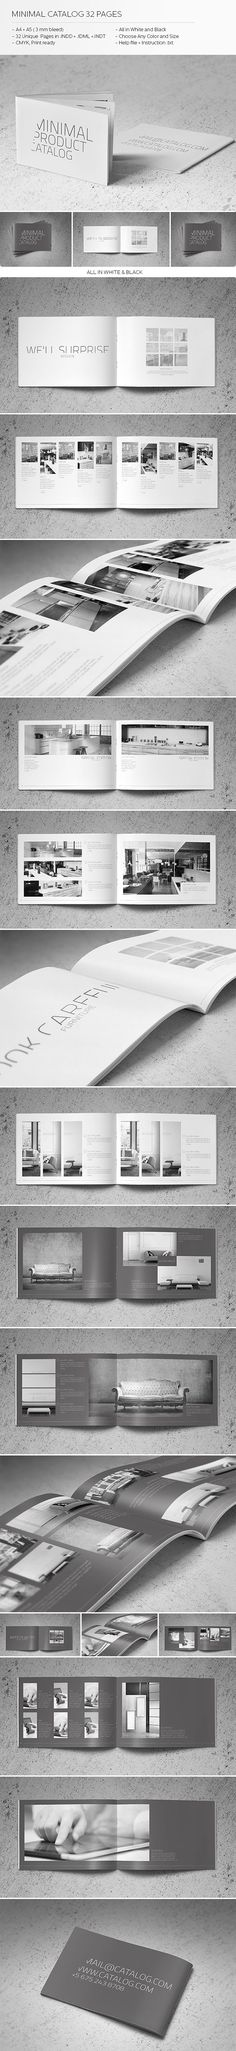 New Fashion Magazine Design Layout Texts Ideas Layout Design, Design Typo, Graphisches Design, Graphic Design Layouts, Typography Design, Branding Design, Design Brochure, Book Design, Print Design